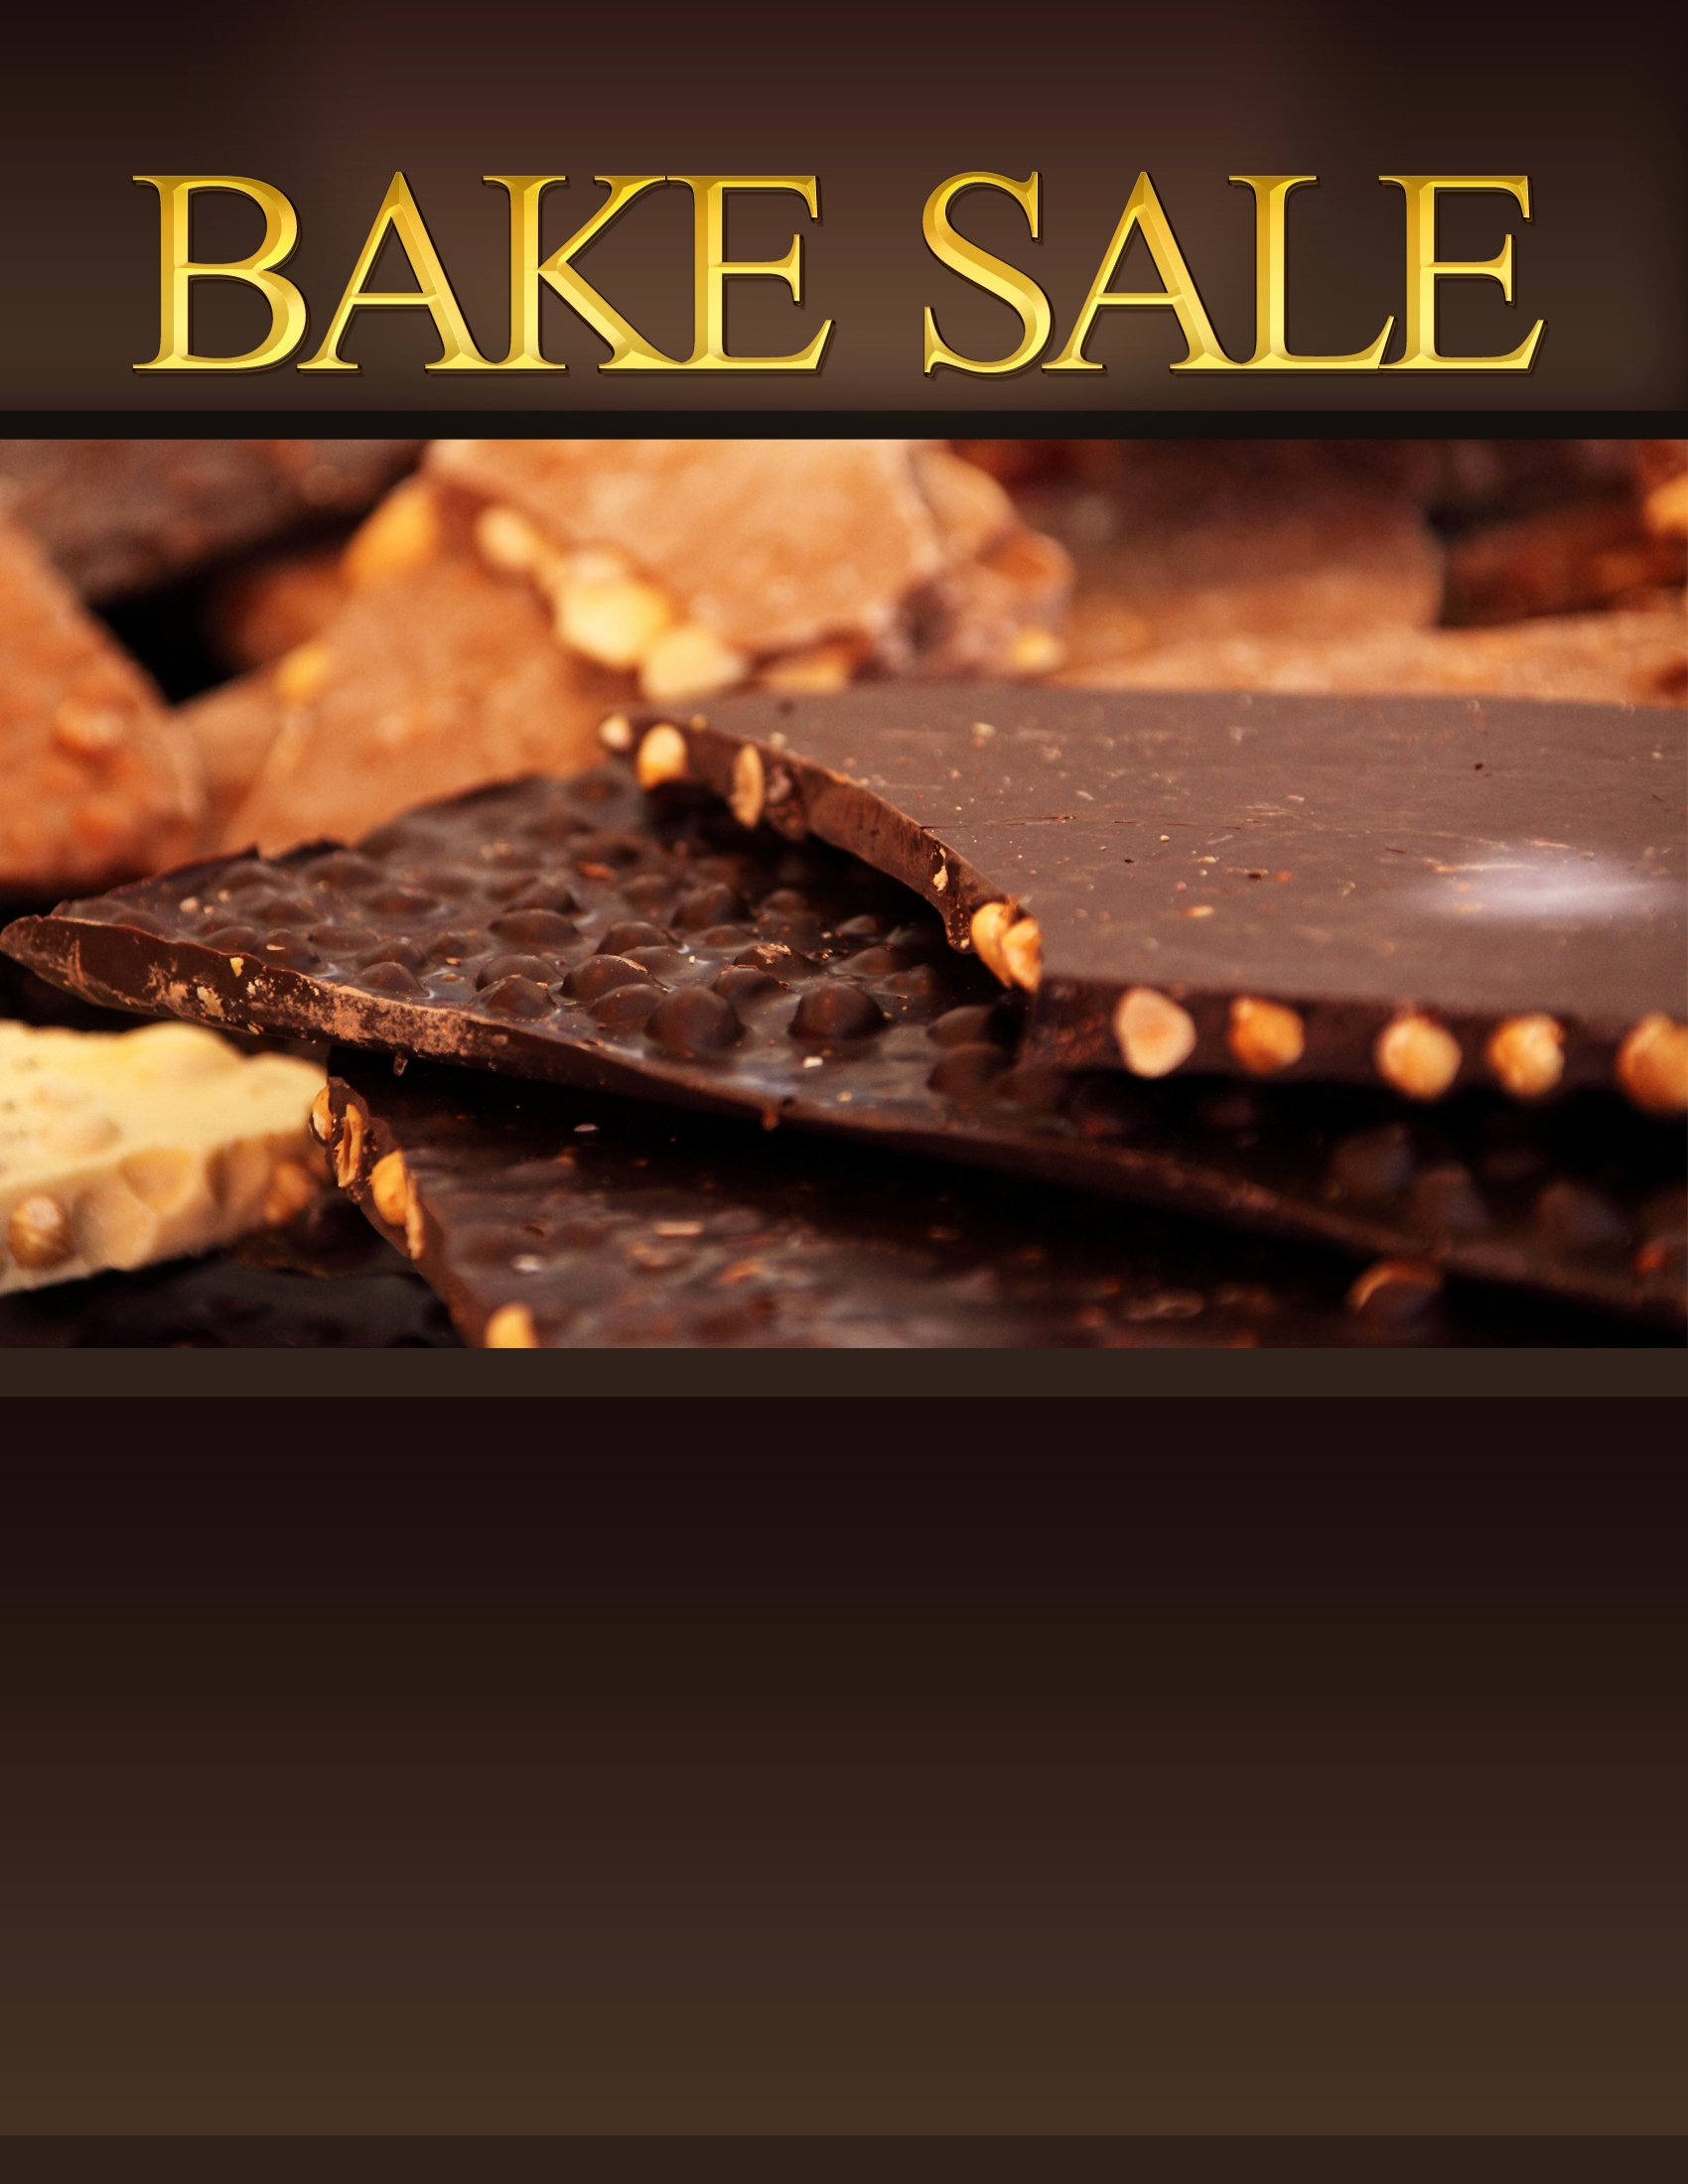 Bake Sale Flyer Templates Free Inspirational Bake Sale Flyers – Free Flyer Designs